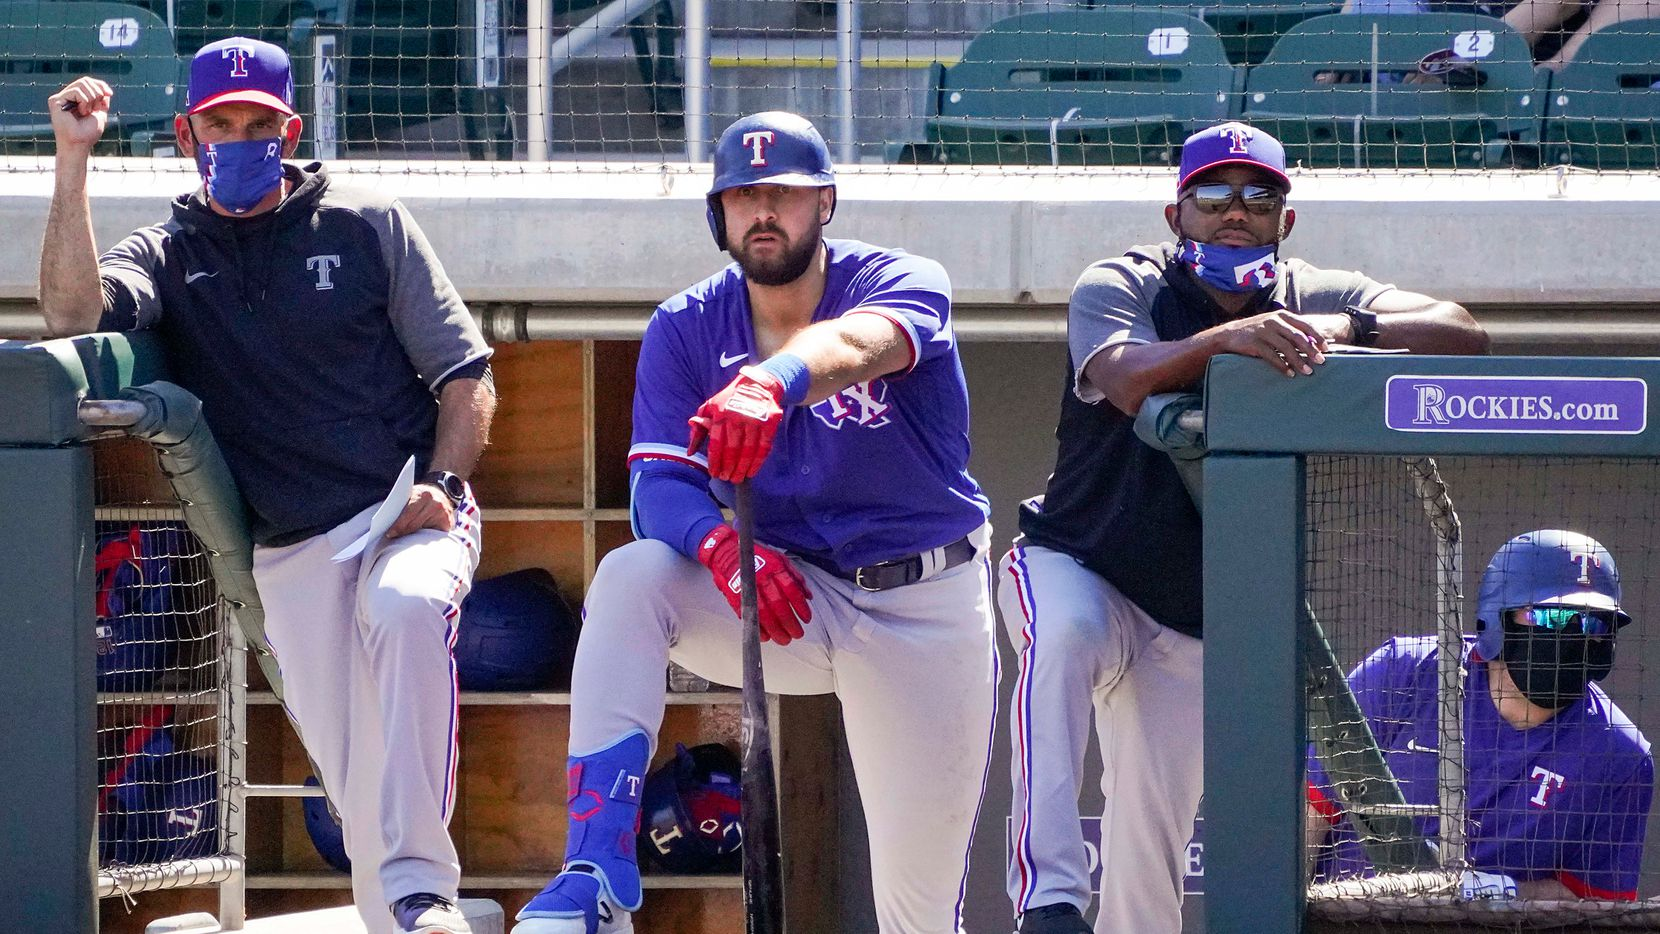 Texas Rangers manager Chris Woodward (left), outfielder Joey Gallo (center) and assistant hitting coach Callix Crabbe watch from the dugout during the third inning of a spring training game against the Arizona Diamondbacks at Salt River Fields at Talking Stick on Saturday, March 6, 2021, in Scottsdale, Ariz. (Smiley N. Pool/The Dallas Morning News)